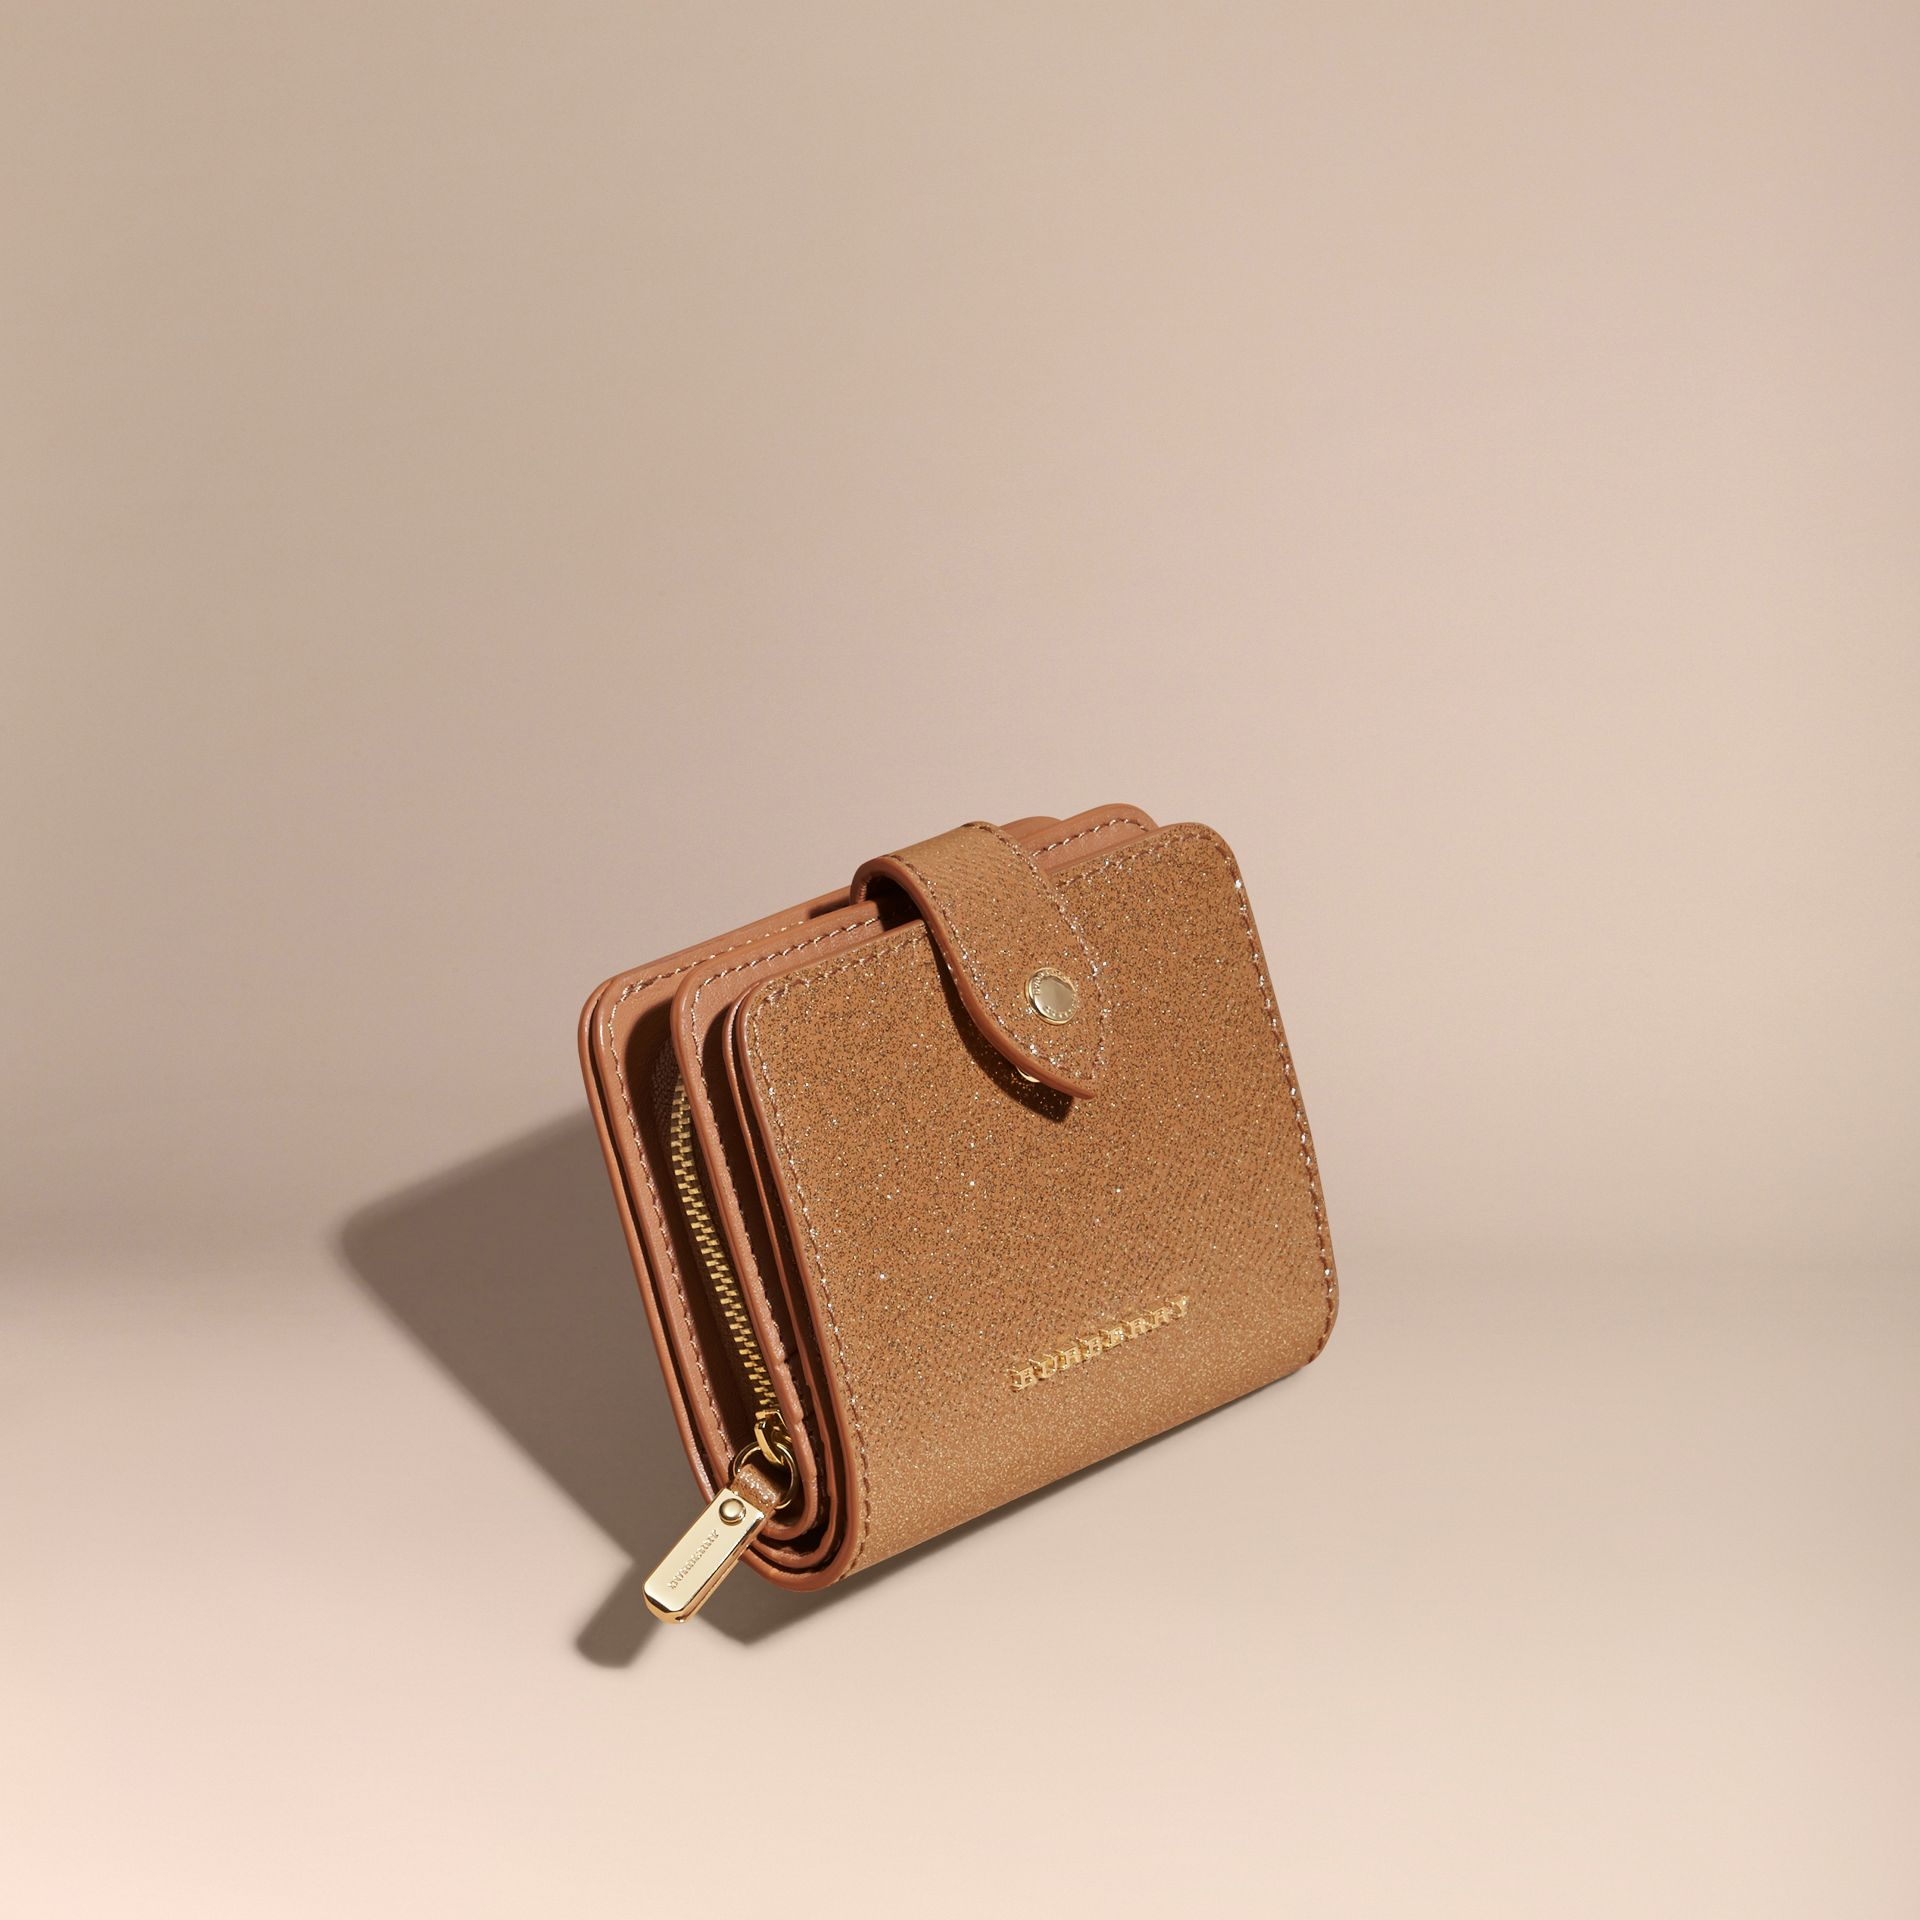 Glitter Patent London Leather Wallet in Camel / Gold - gallery image 1